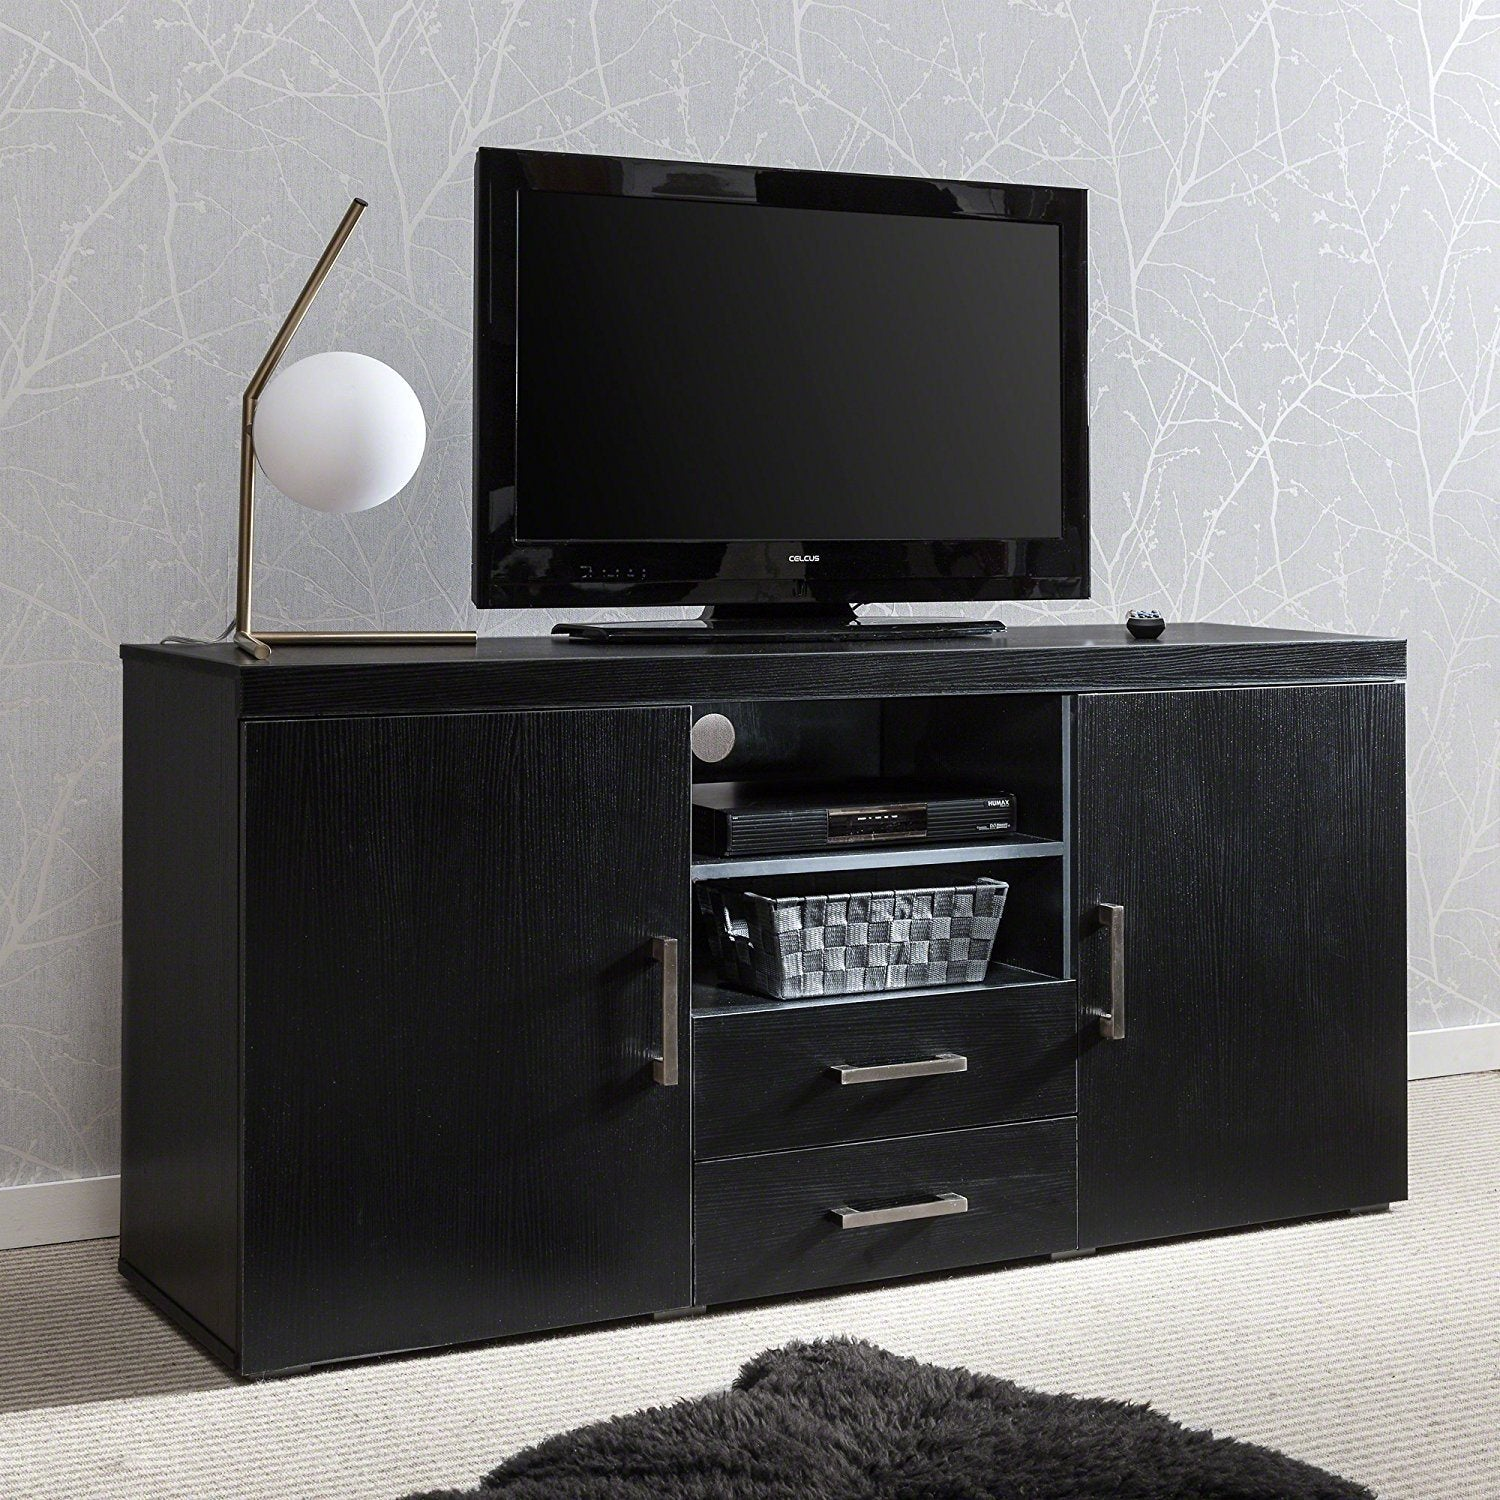 TV Stand Cabinet Unit Cupboard – with drawer and shelves (Black) - Laura James